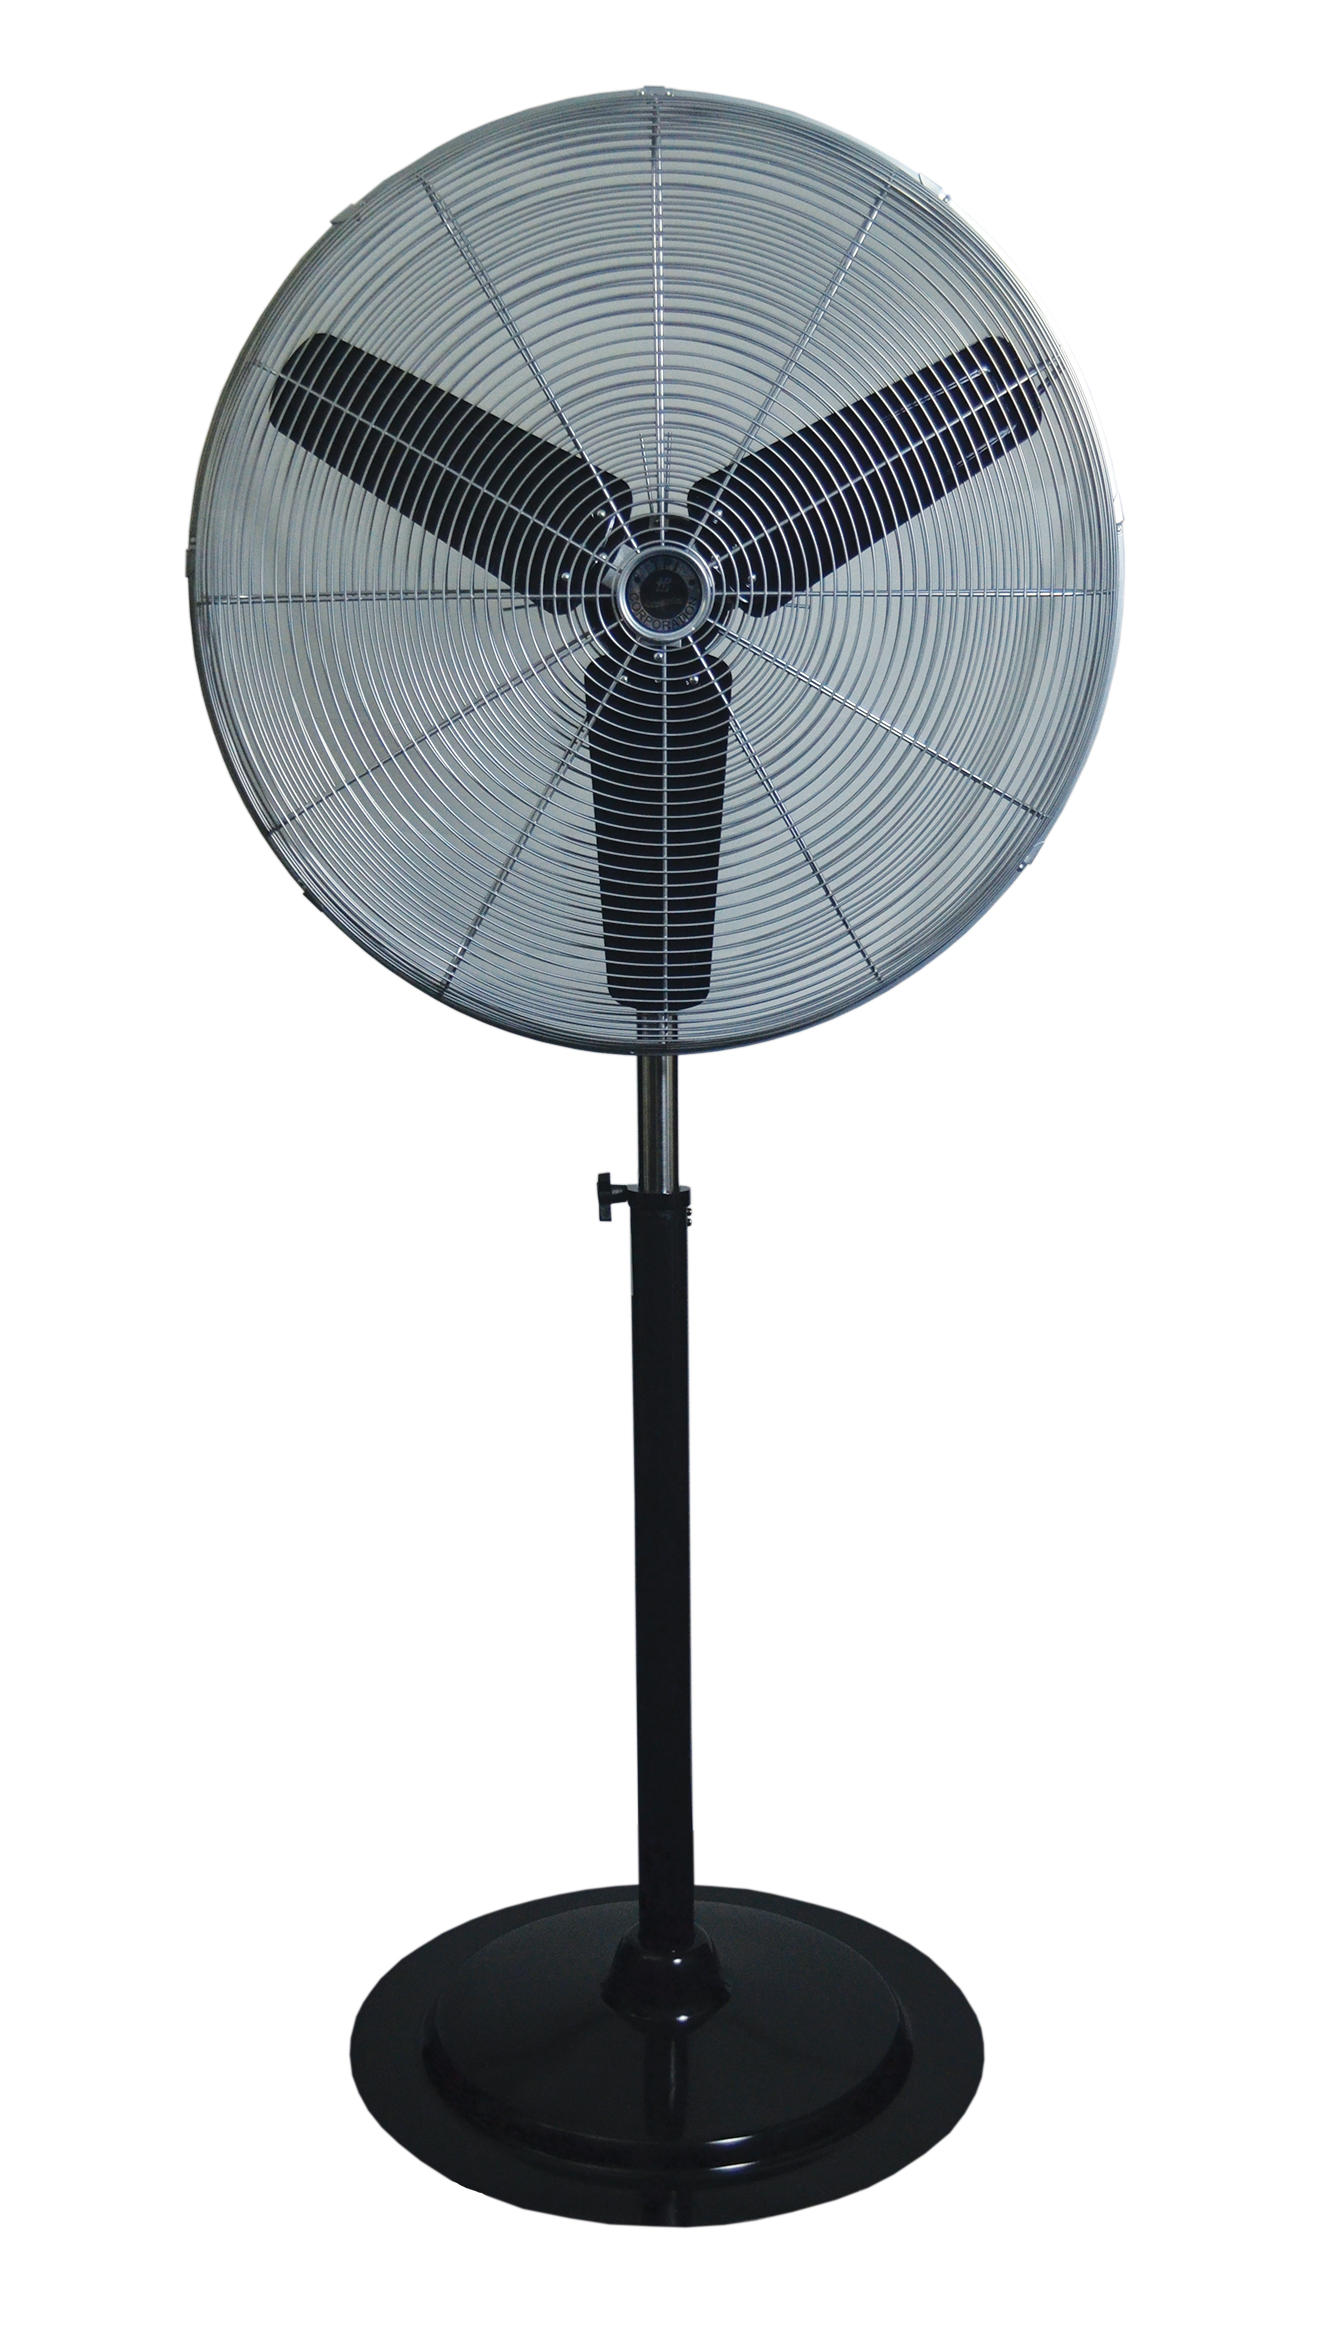 high image goldair standing pedestal gipf products industrial large hr fan floor power mail